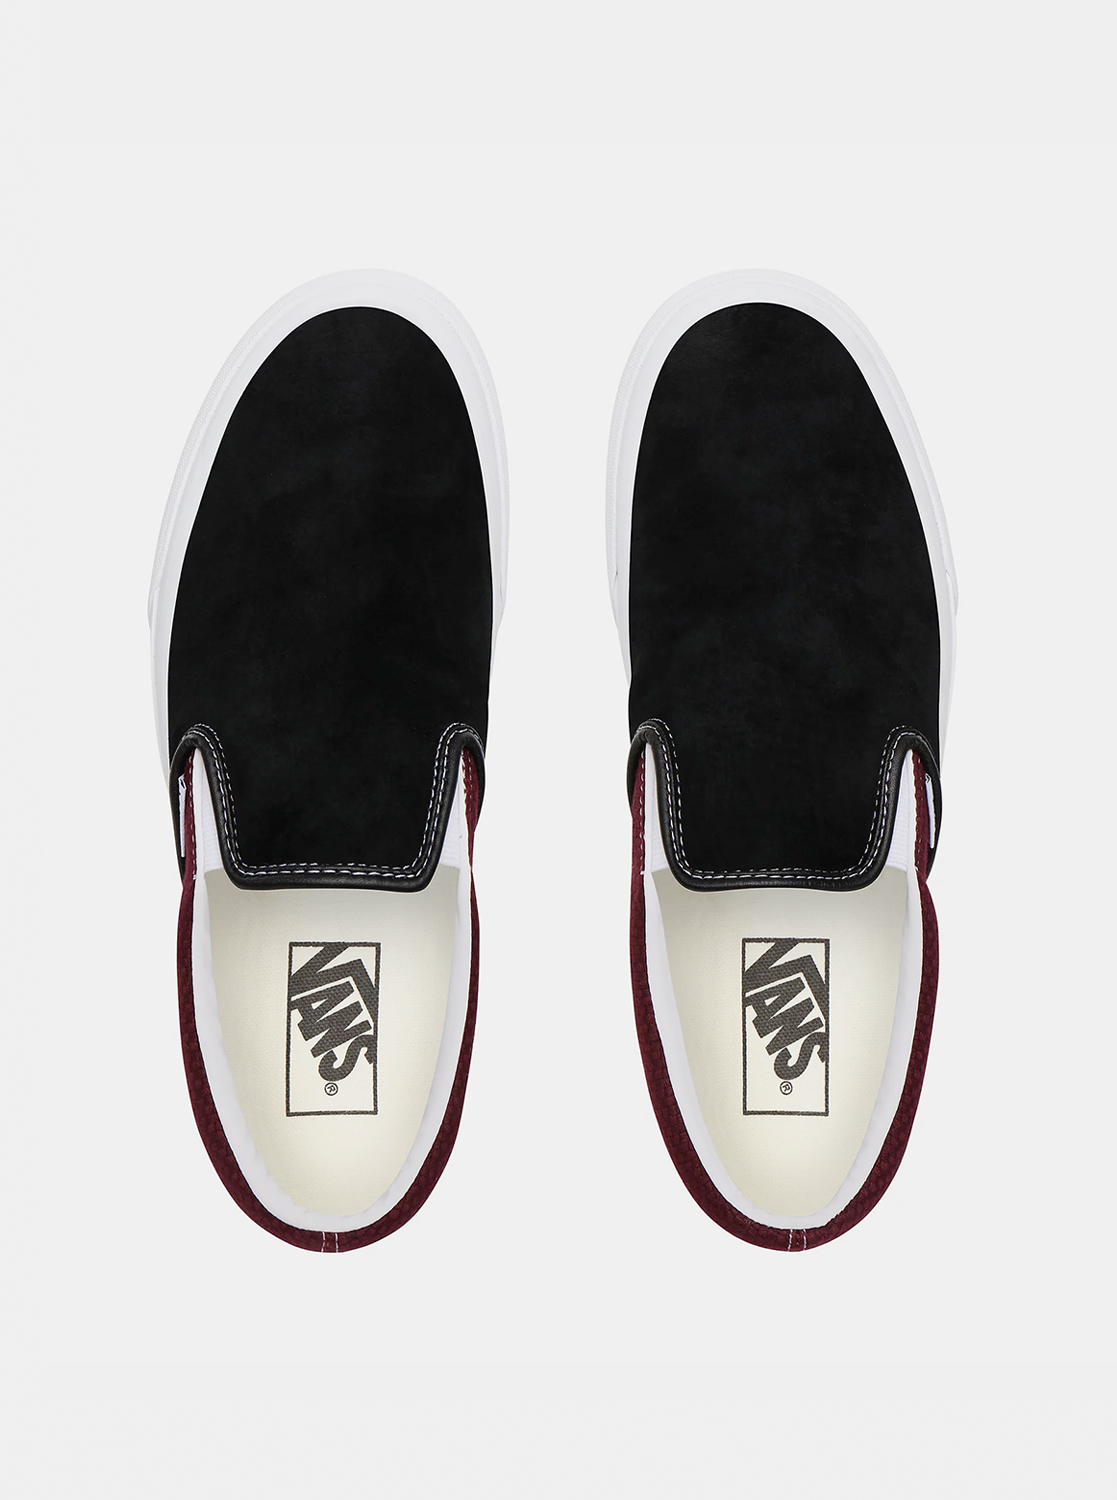 Vans leather men´s slip on sneakers